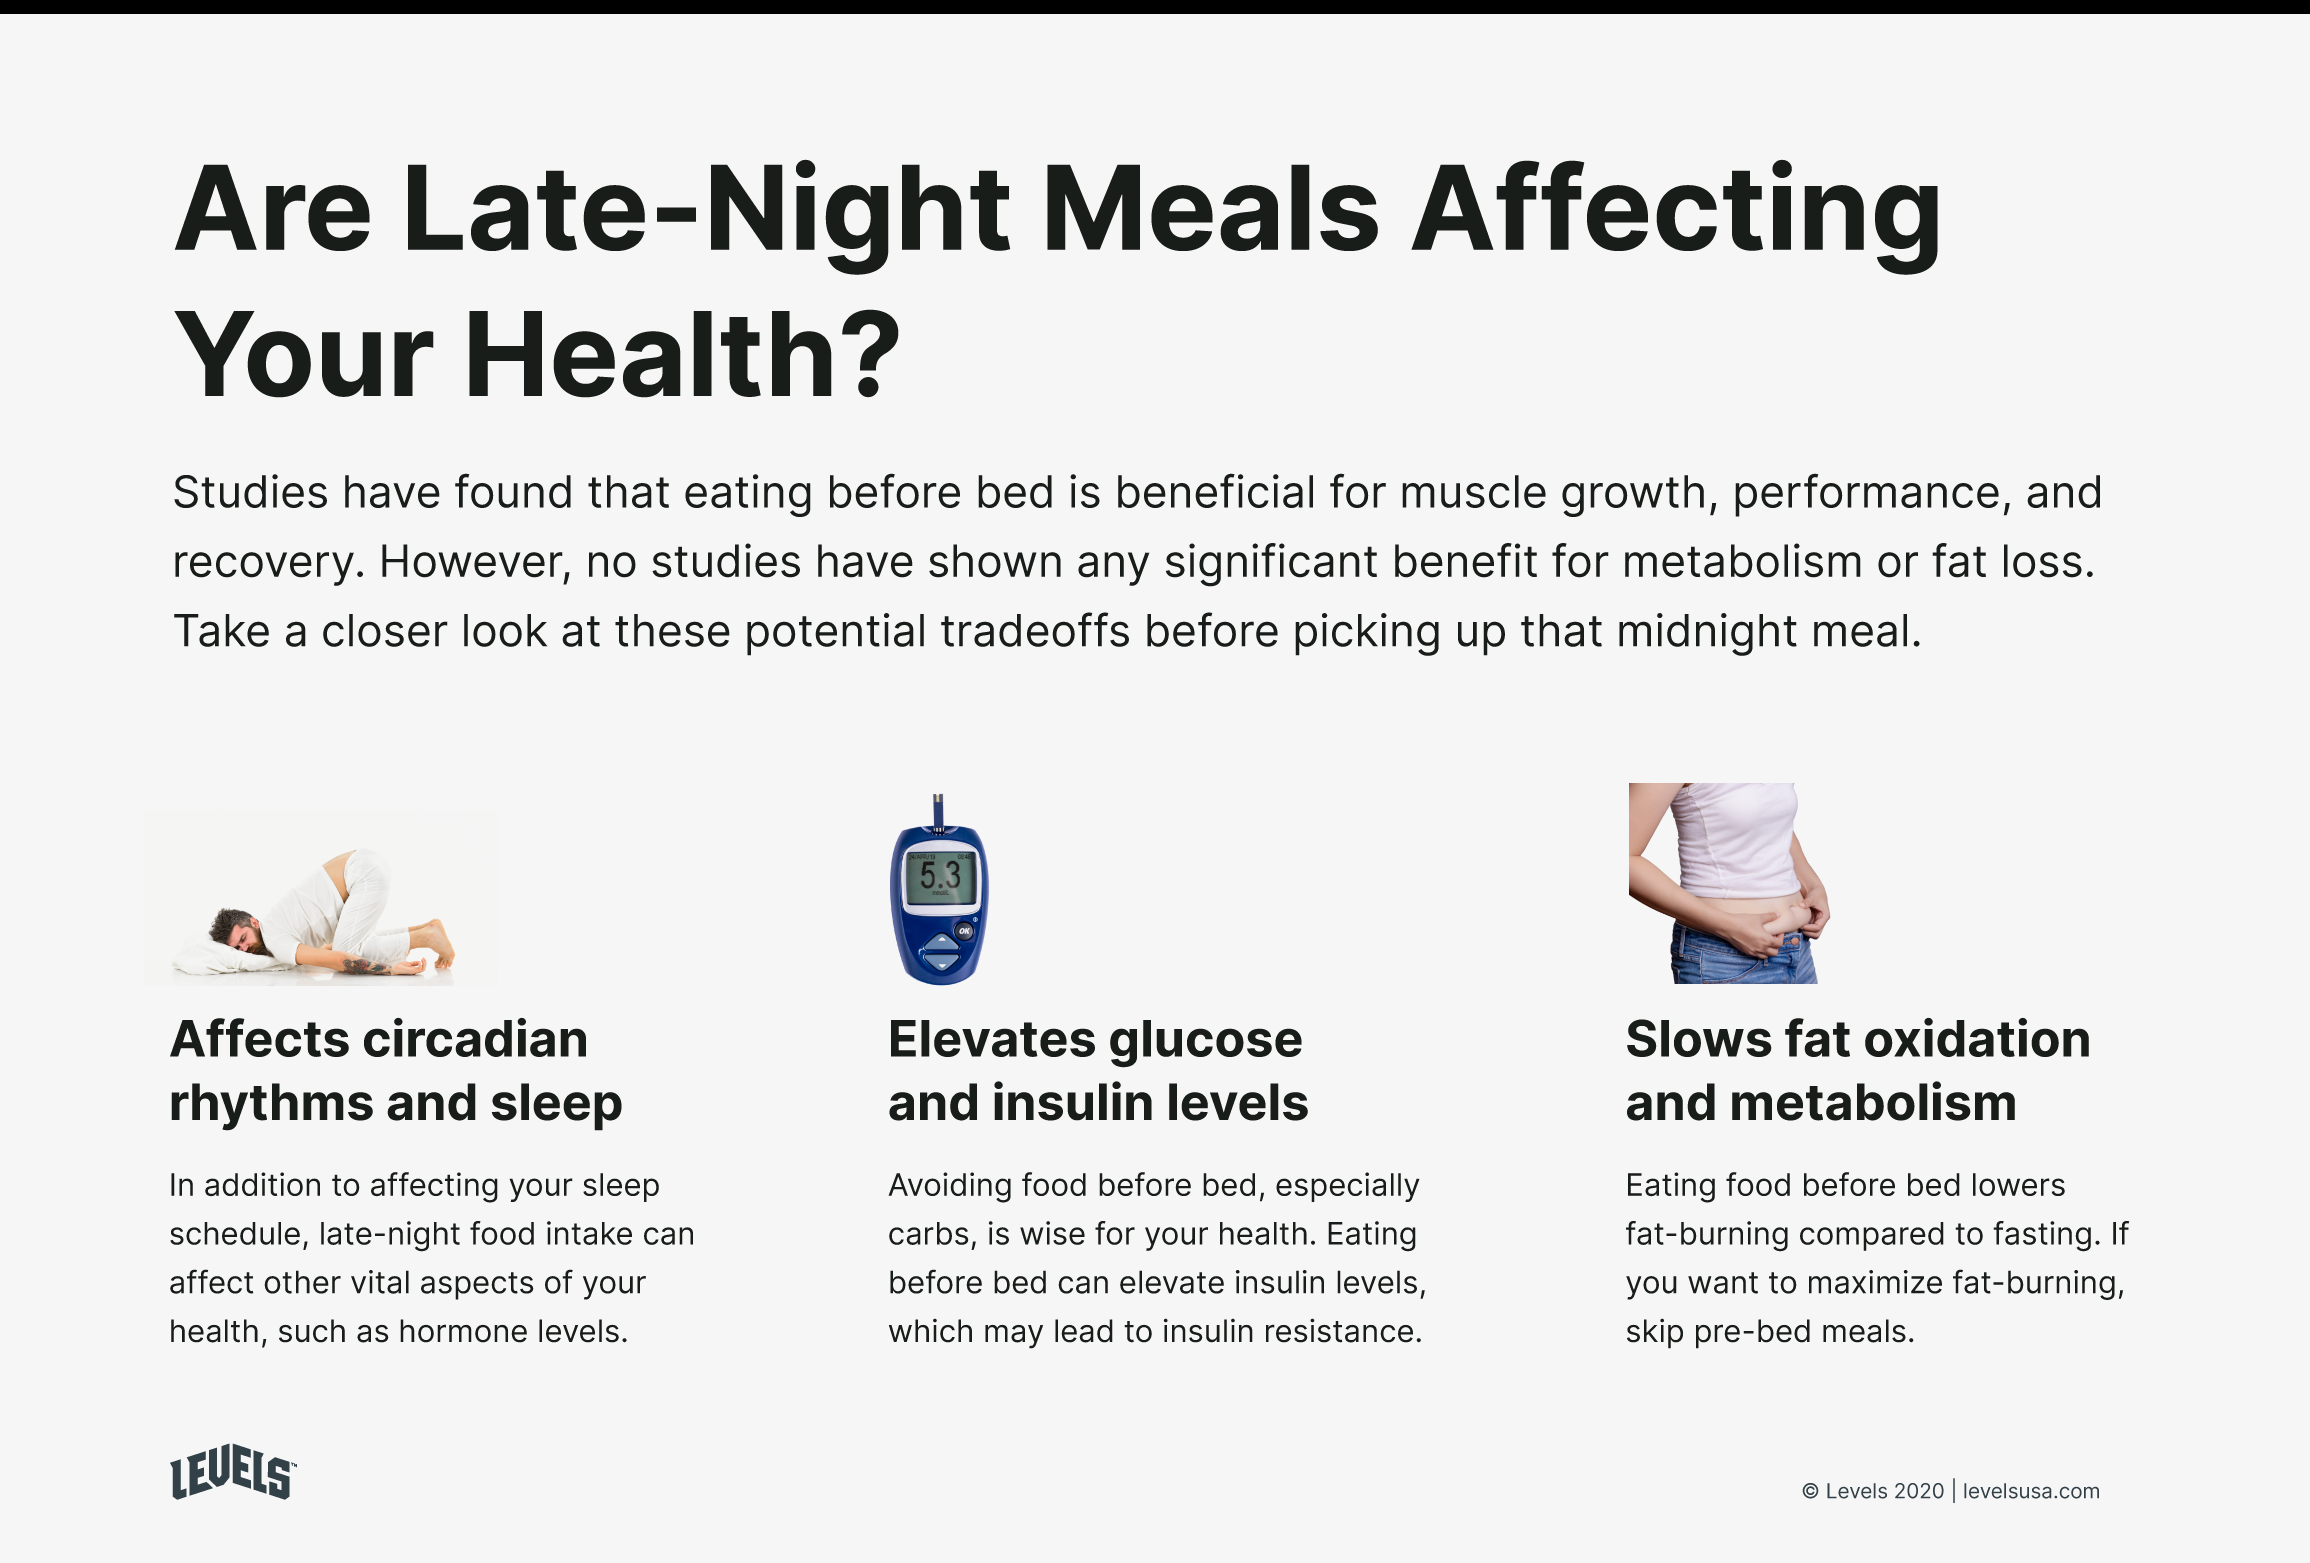 Downsides of Eating Before Bed Infographic